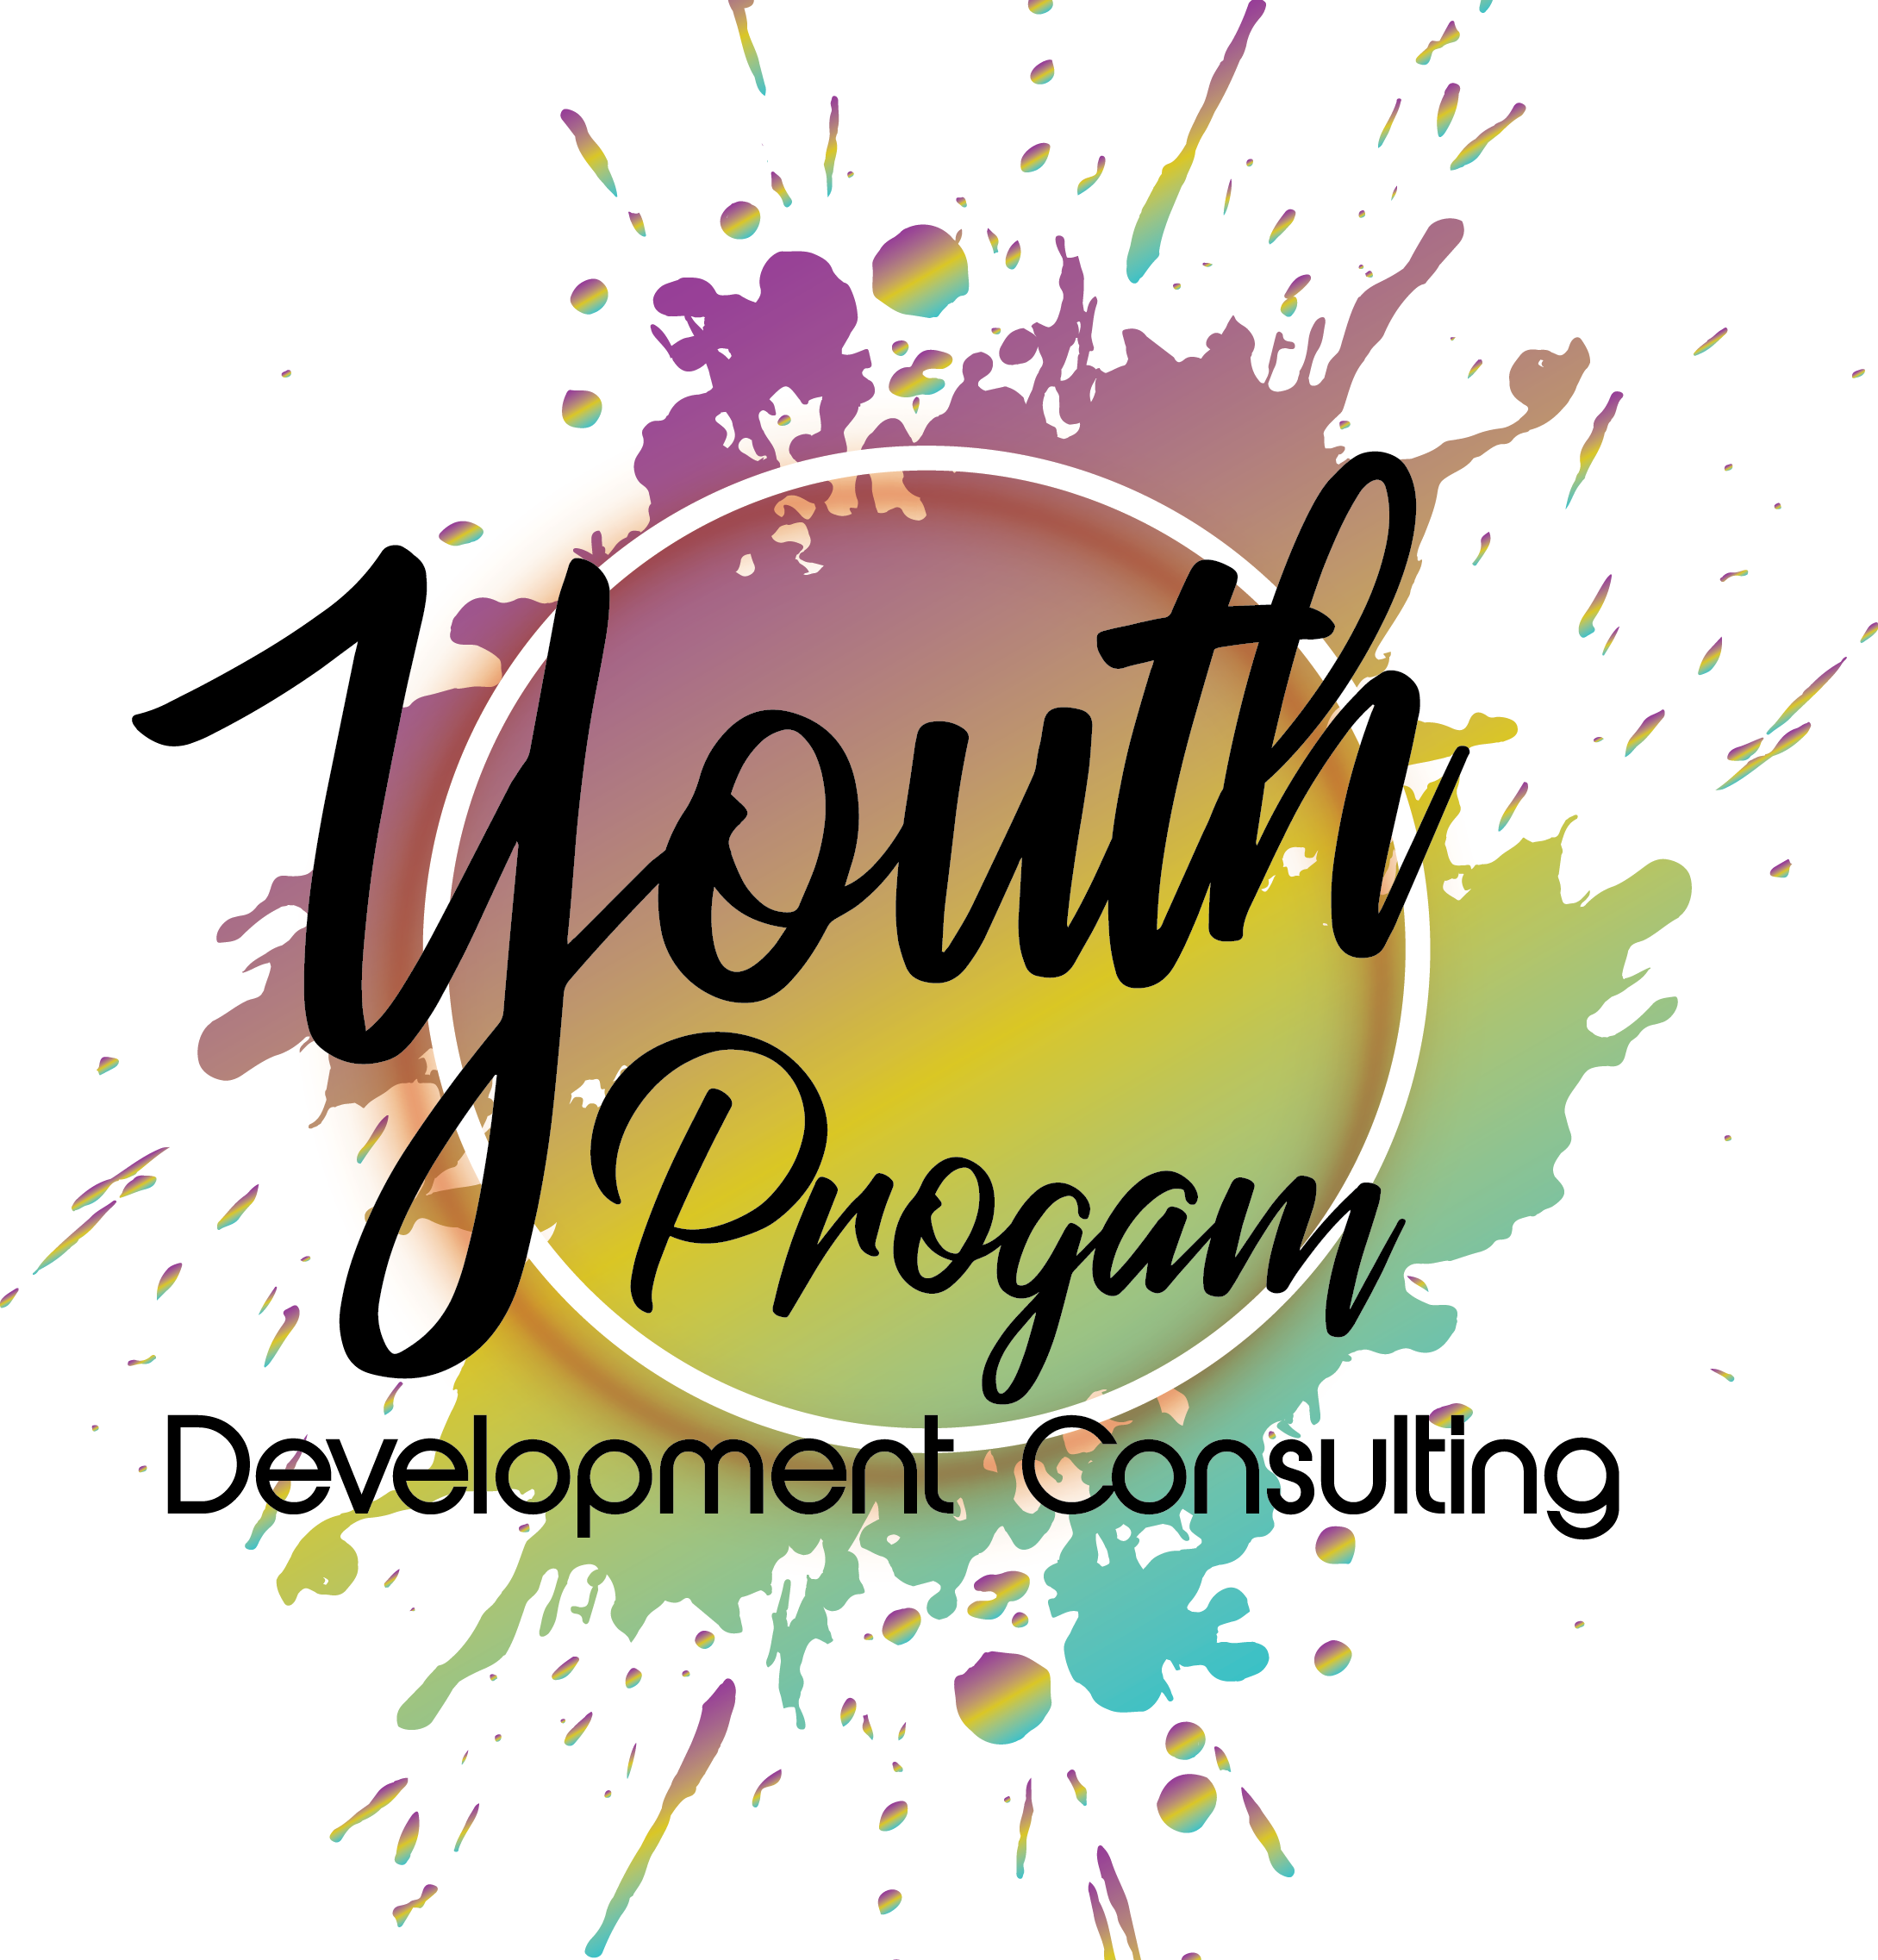 Youth Program Development Consulting